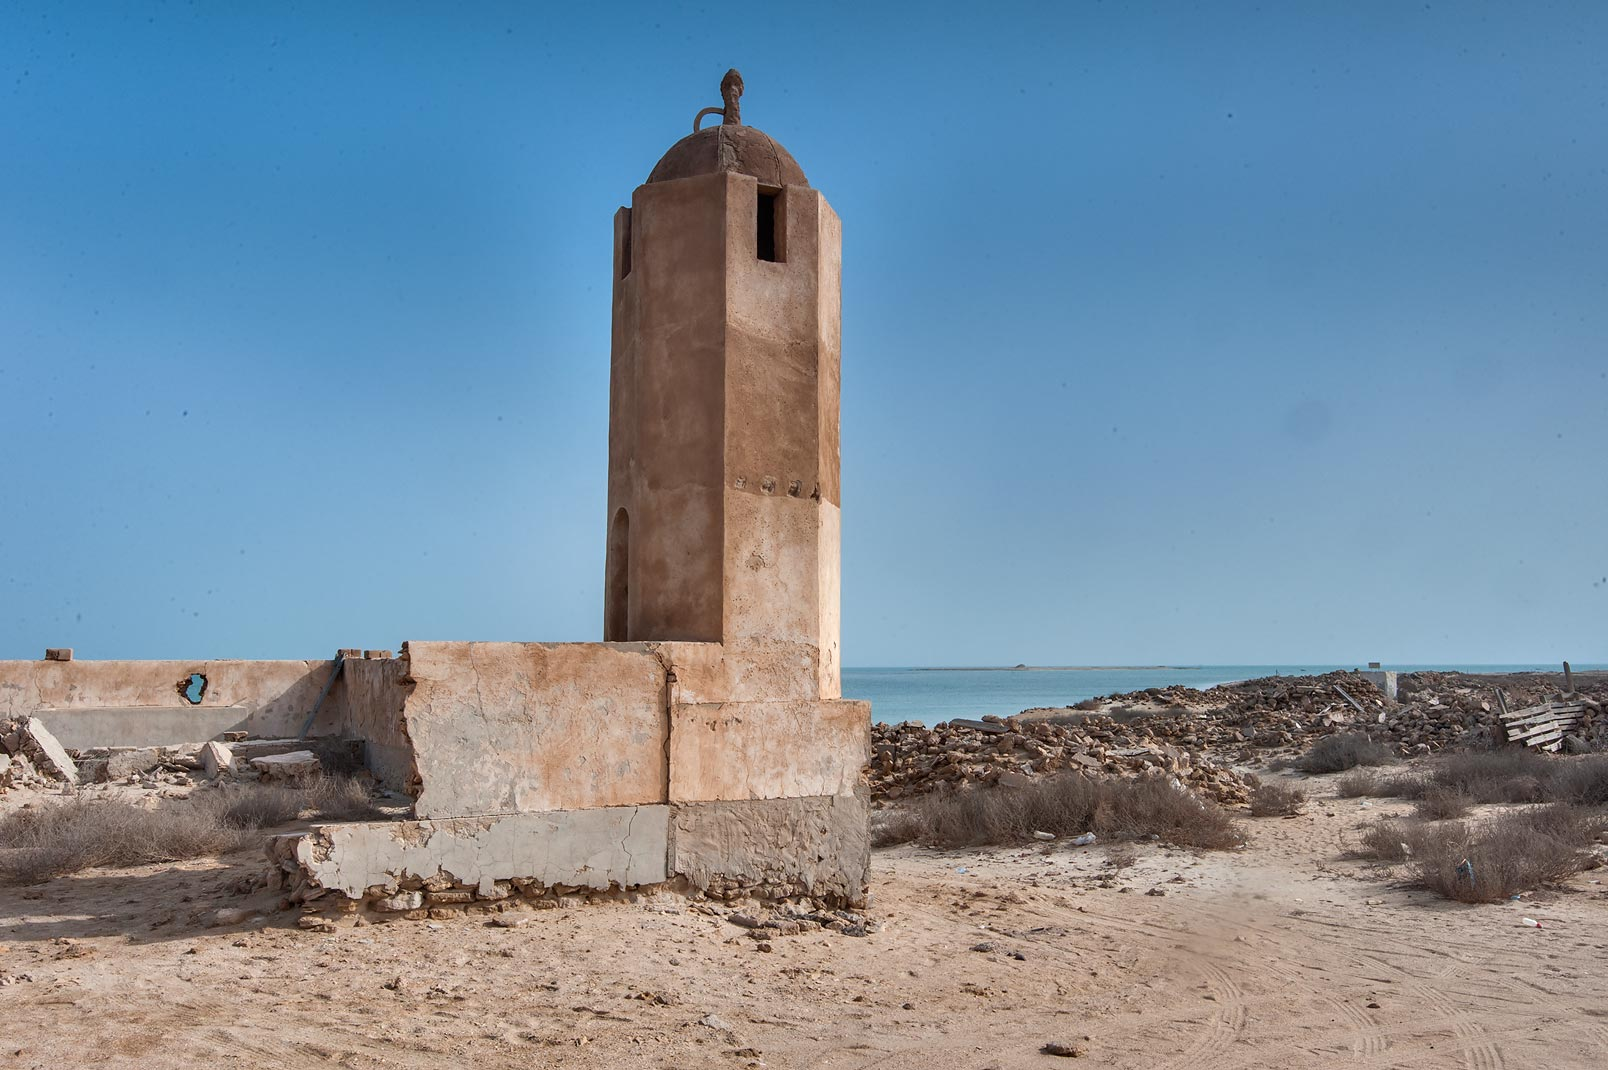 Minaret of a mosque in old fishing village (ghost...from Lekhwair on northern coast. Qatar